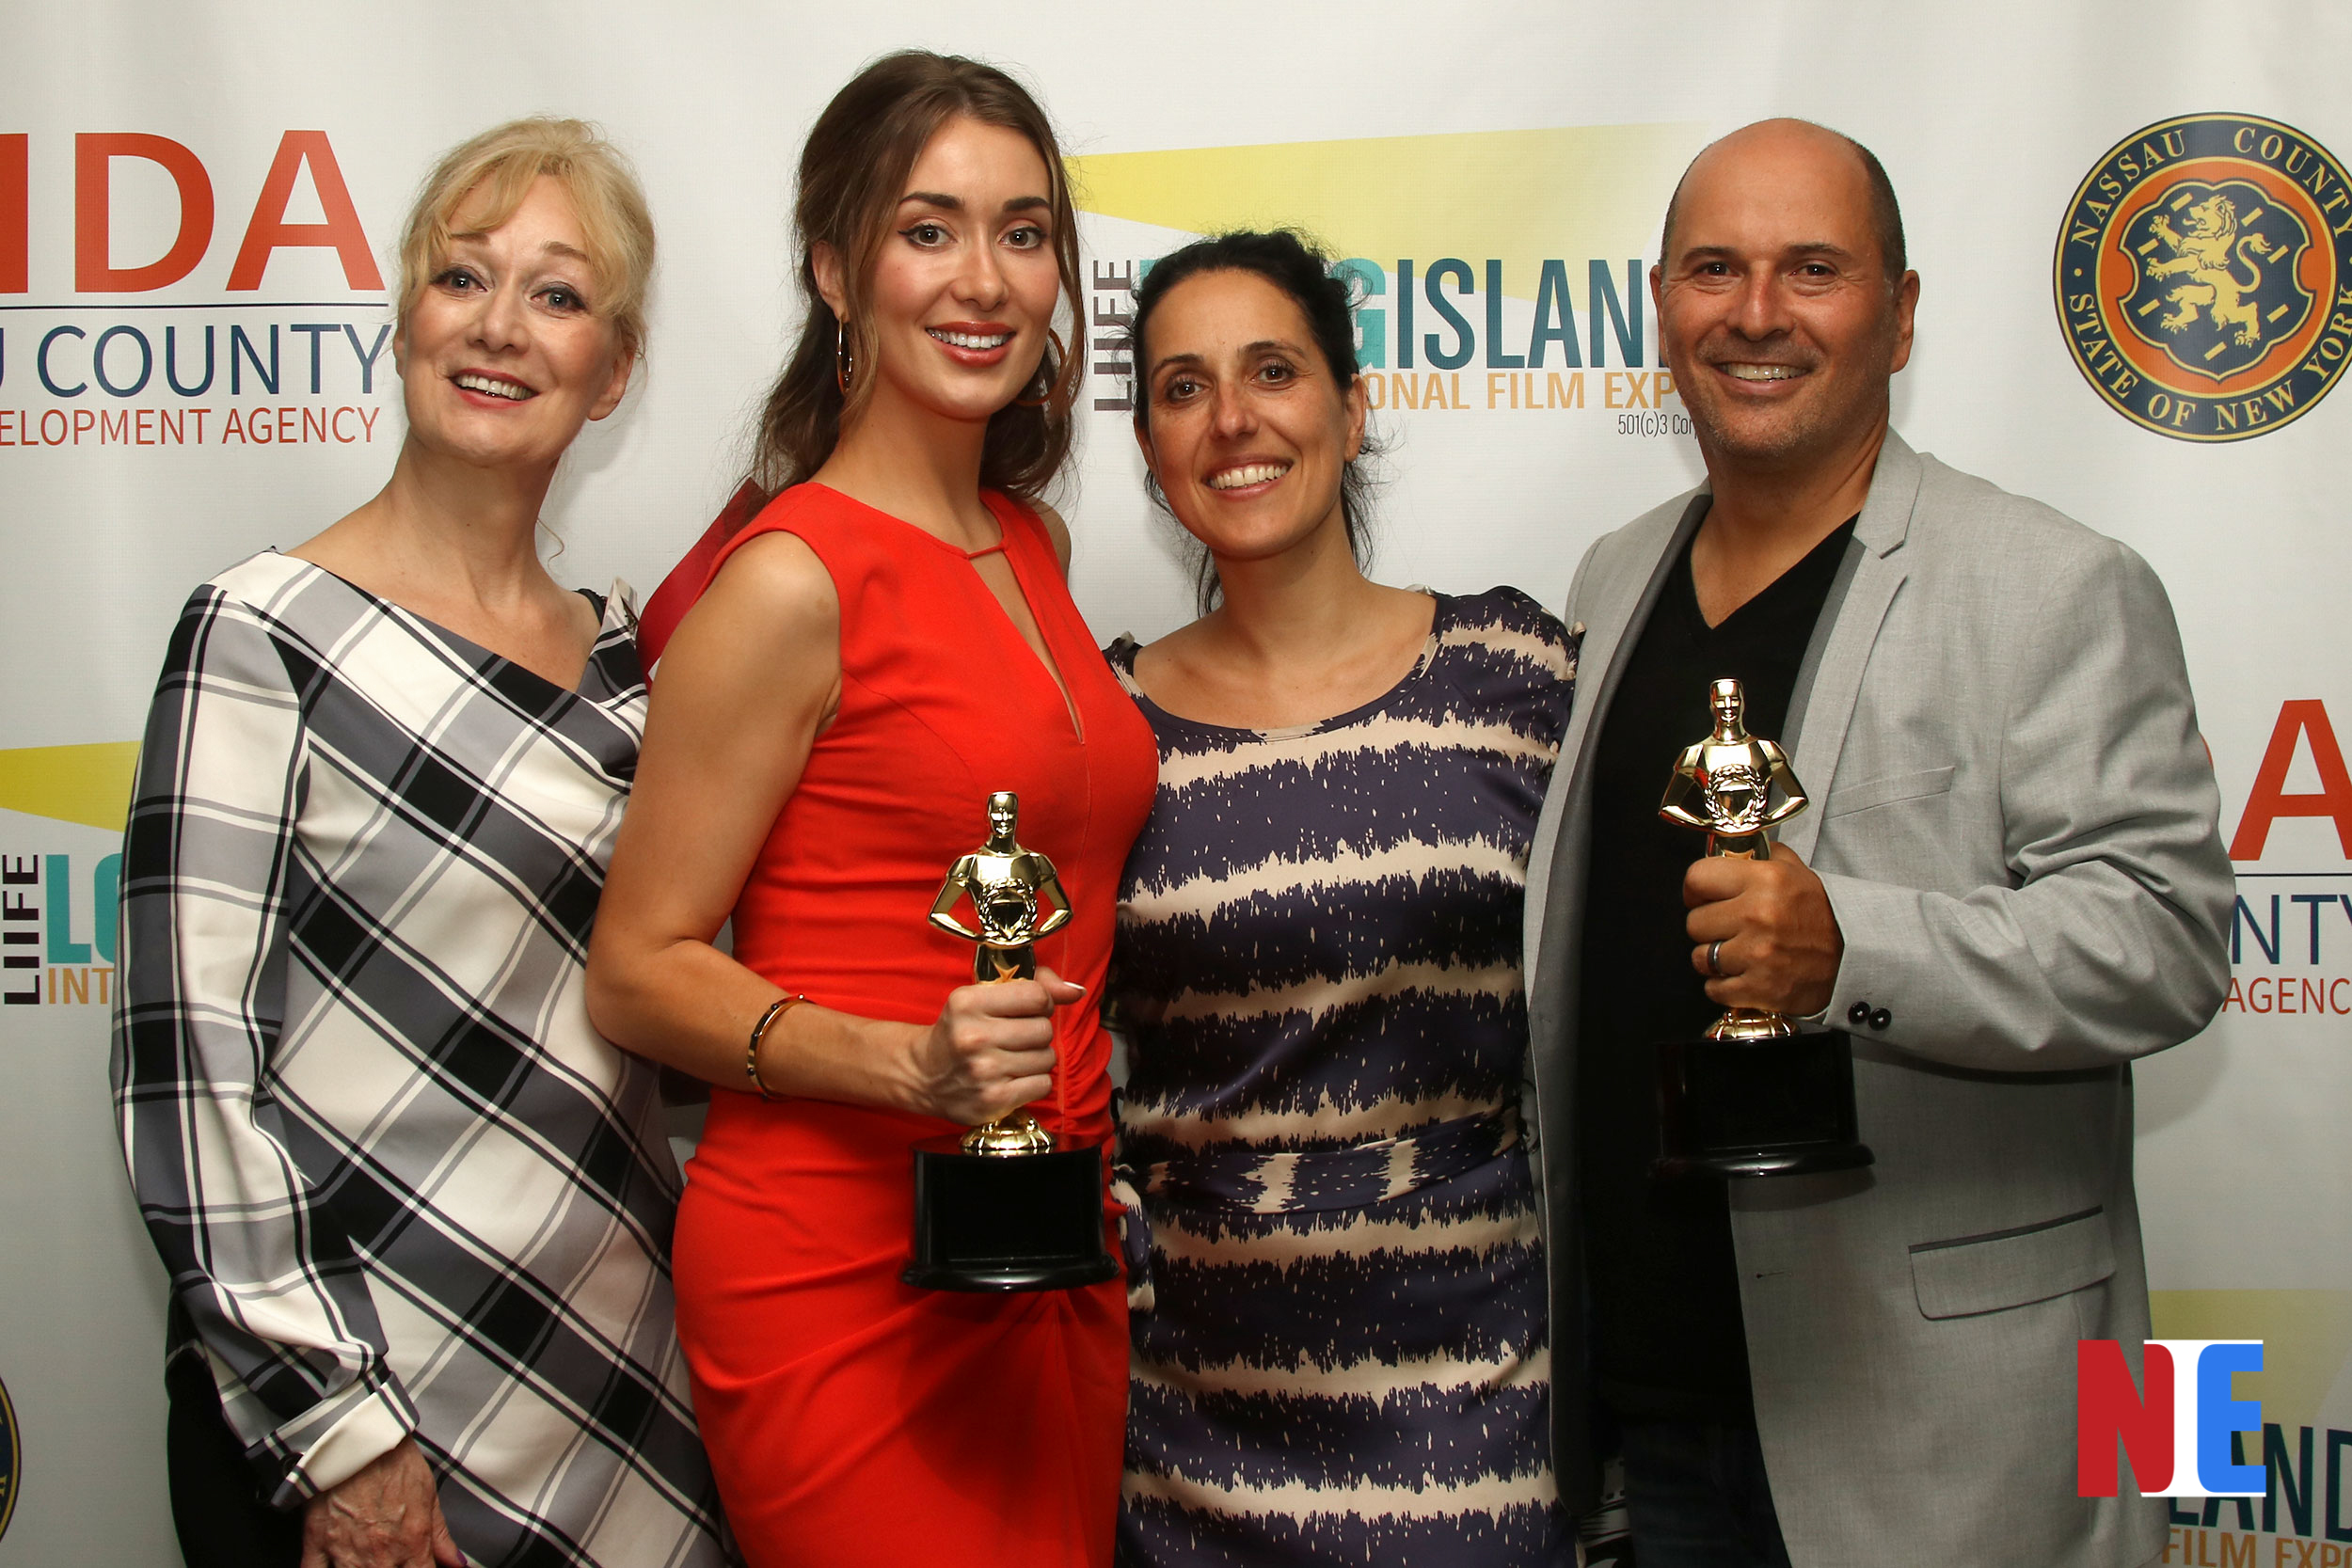 Verity East, Eli Hershko and guests on the red carpet winning the Jury Award for Best Feature Film at the Long Island International Film Expo inside the Bellmore Movies and Showplace in New York on July 18, 2019 |  Courtesy of NIE